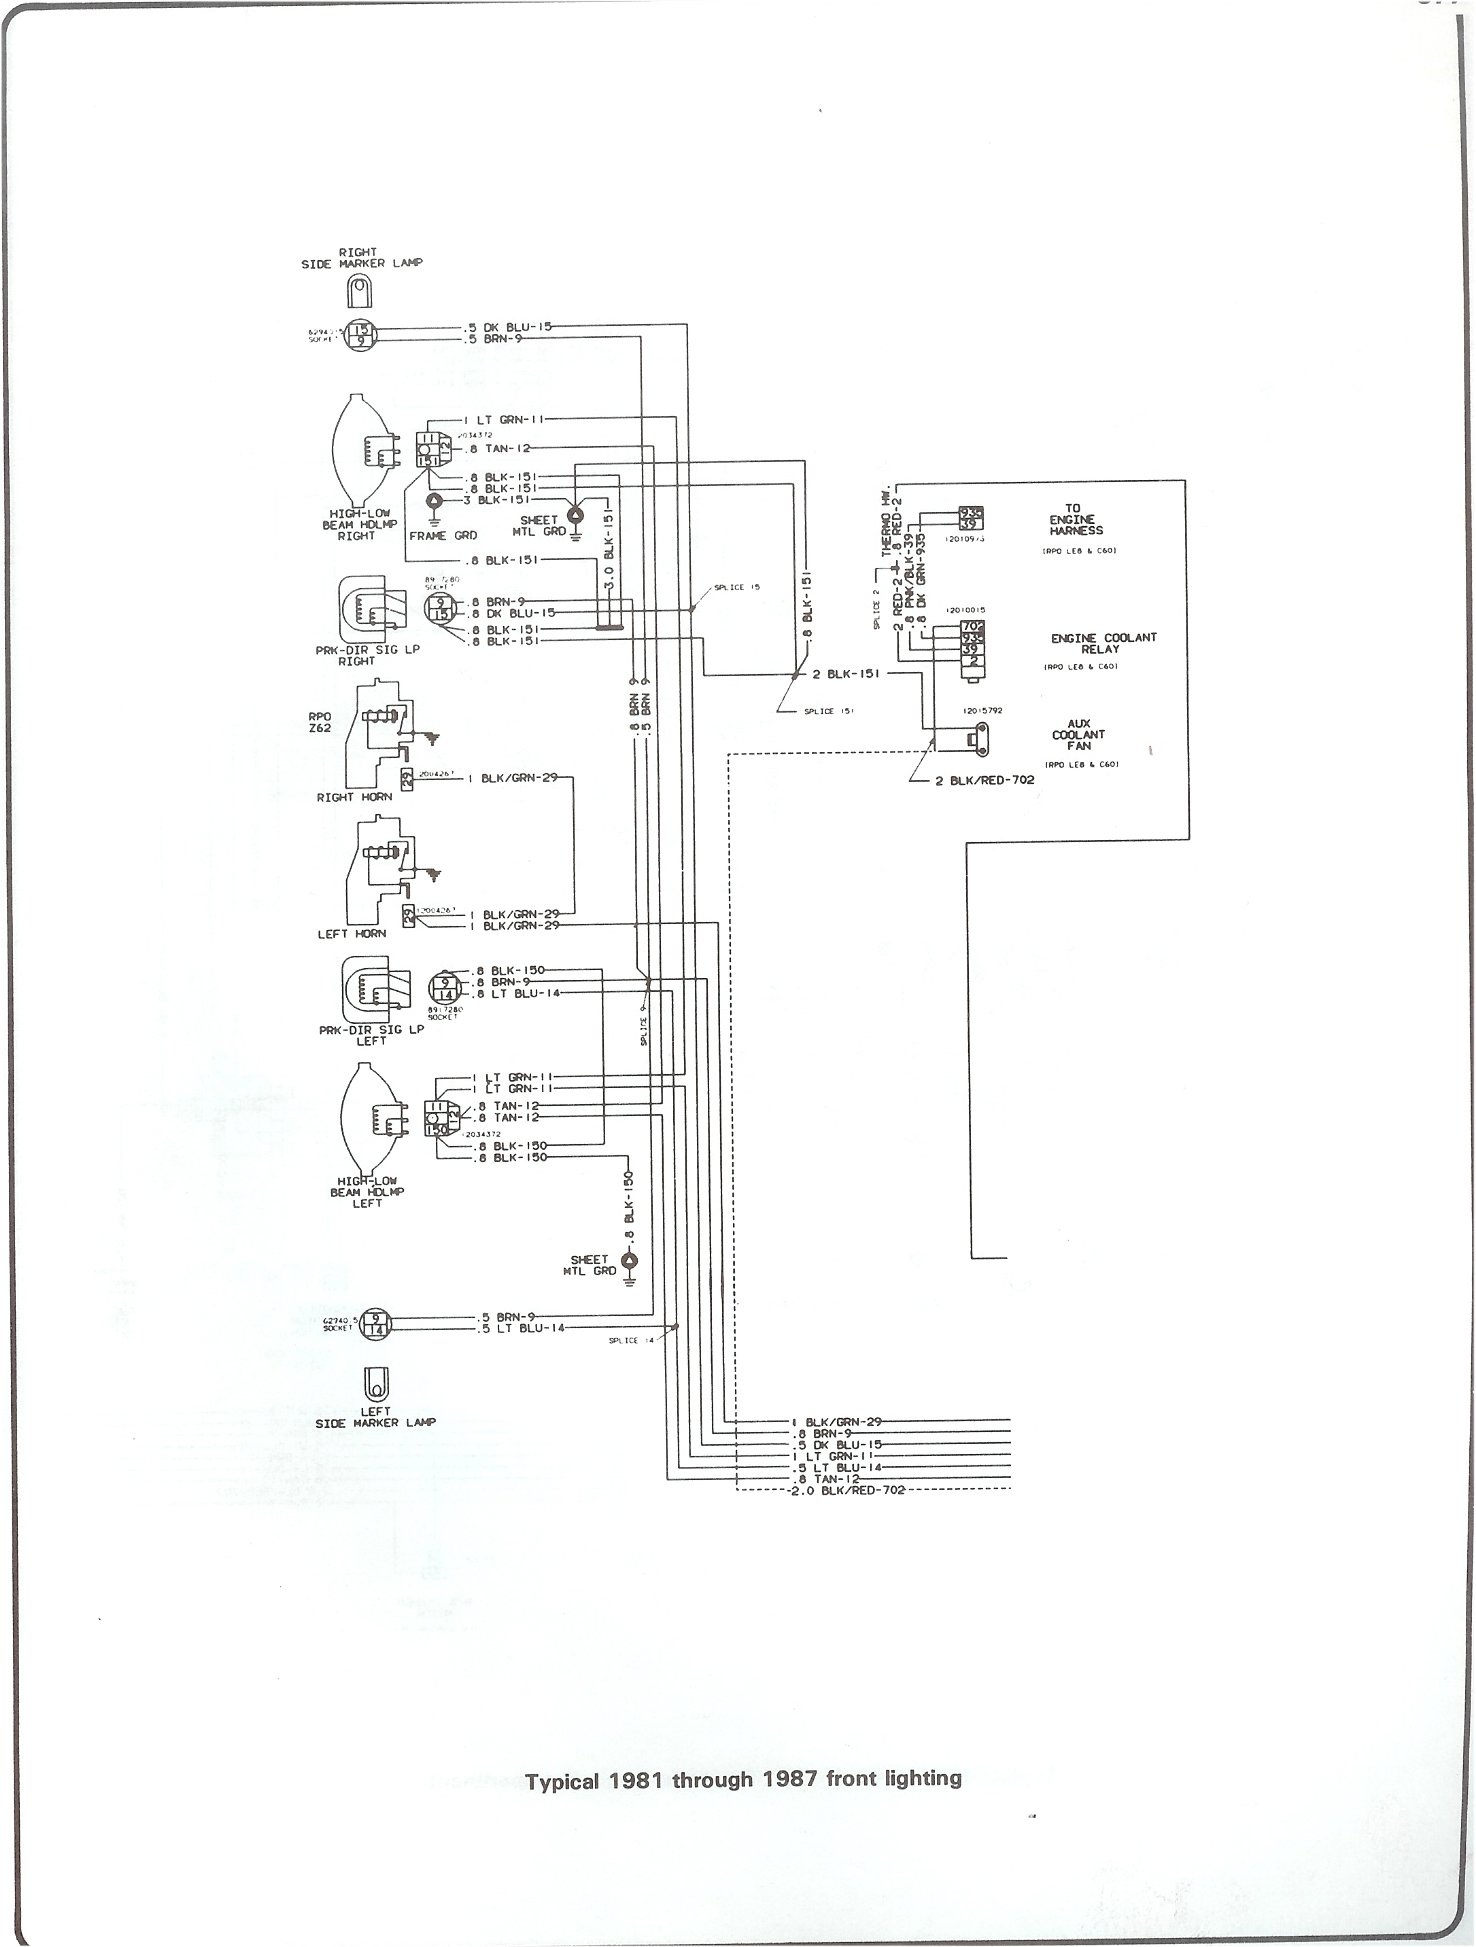 Electrical diagrams chevy only | Page 2 | Truck Forum on 2003 chevy silverado instrument cluster wiring diagram, audi instrument cluster wiring diagram, chevy truck instrument cluster assembly, chevy truck body diagram, 2004 chevy silverado instrument cluster wiring diagram, ford instrument cluster wiring diagram,